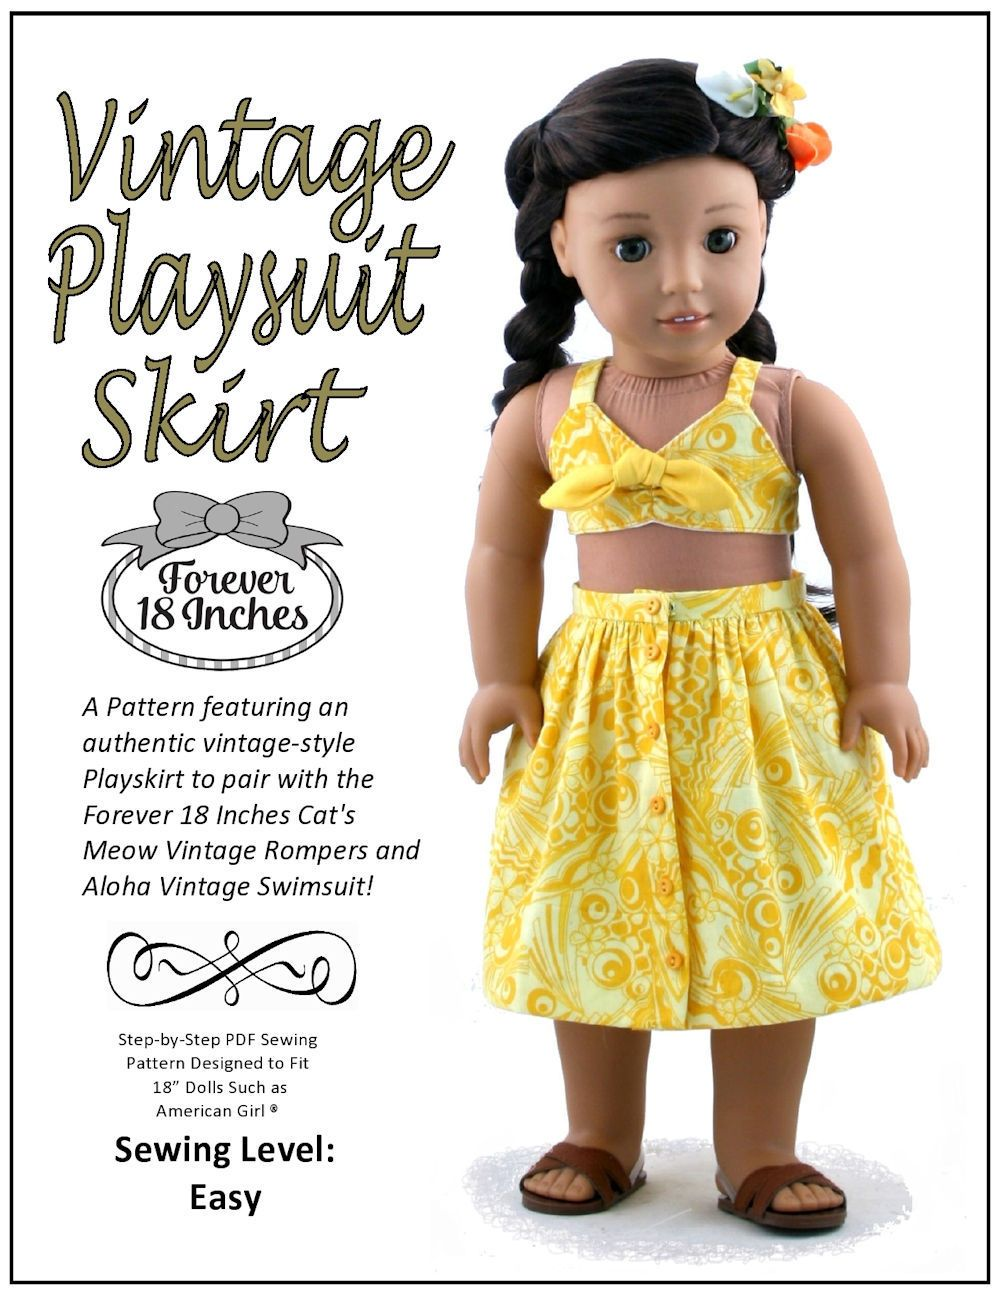 735adc37307 Forever 18 Inches Vintage Playsuit Skirt Doll Clothes Pattern 18 ...